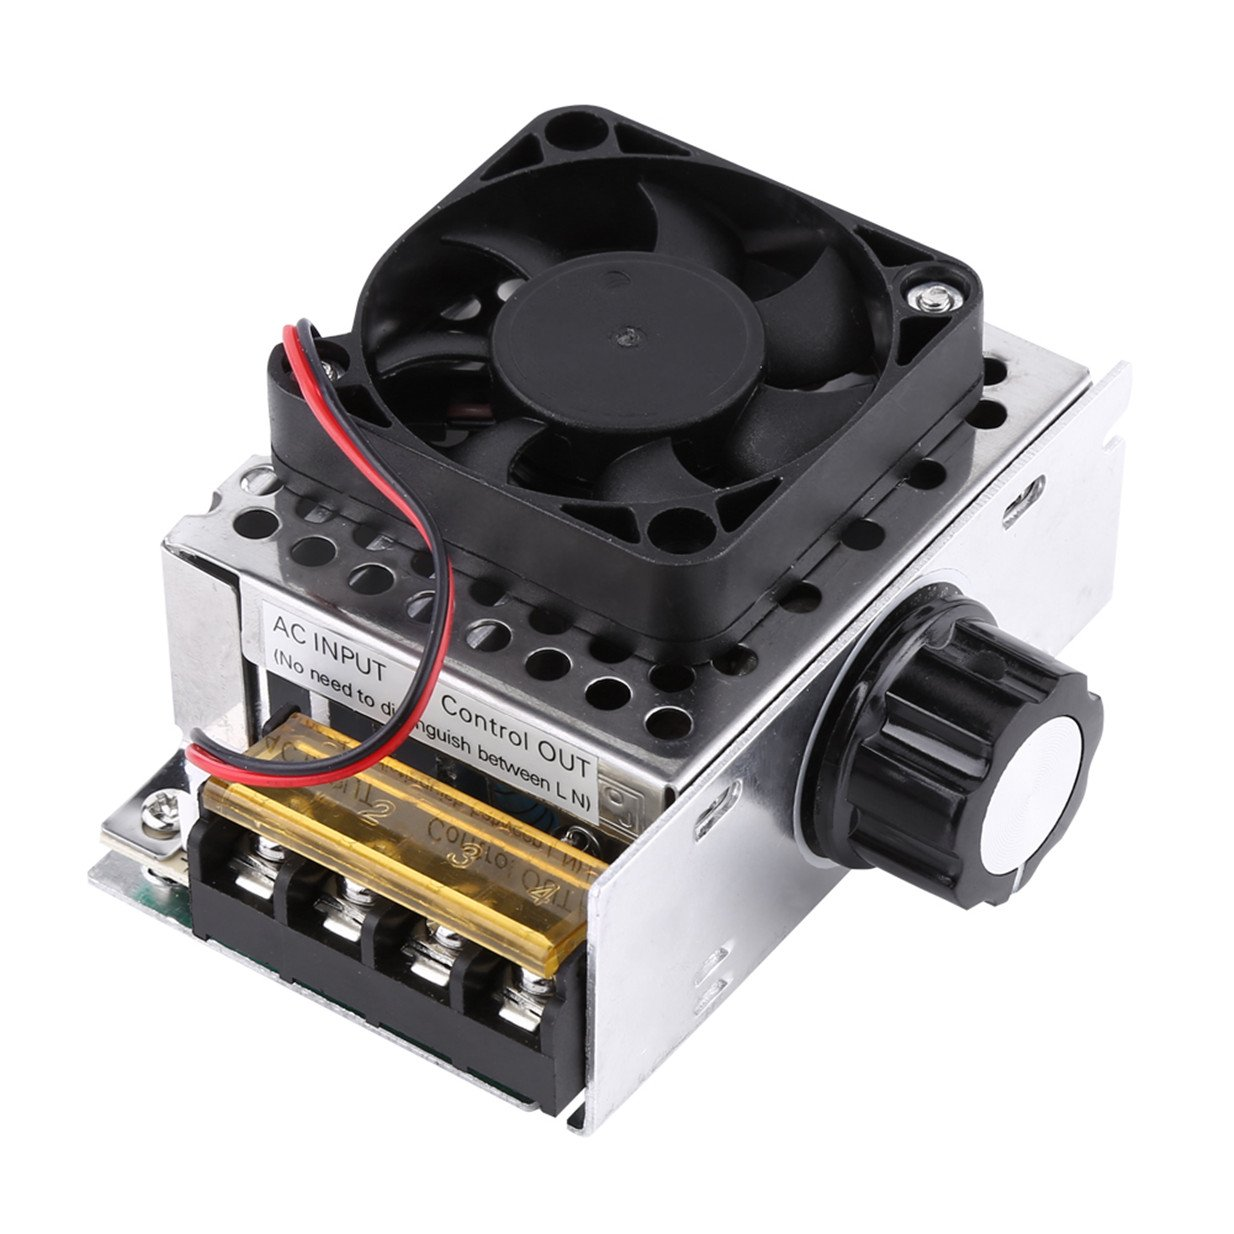 110V AC 4000W SCR Electric Voltage Regulator Dimmer Temperature Controller Motor Speed Controlling Module Board With Cooling Fan